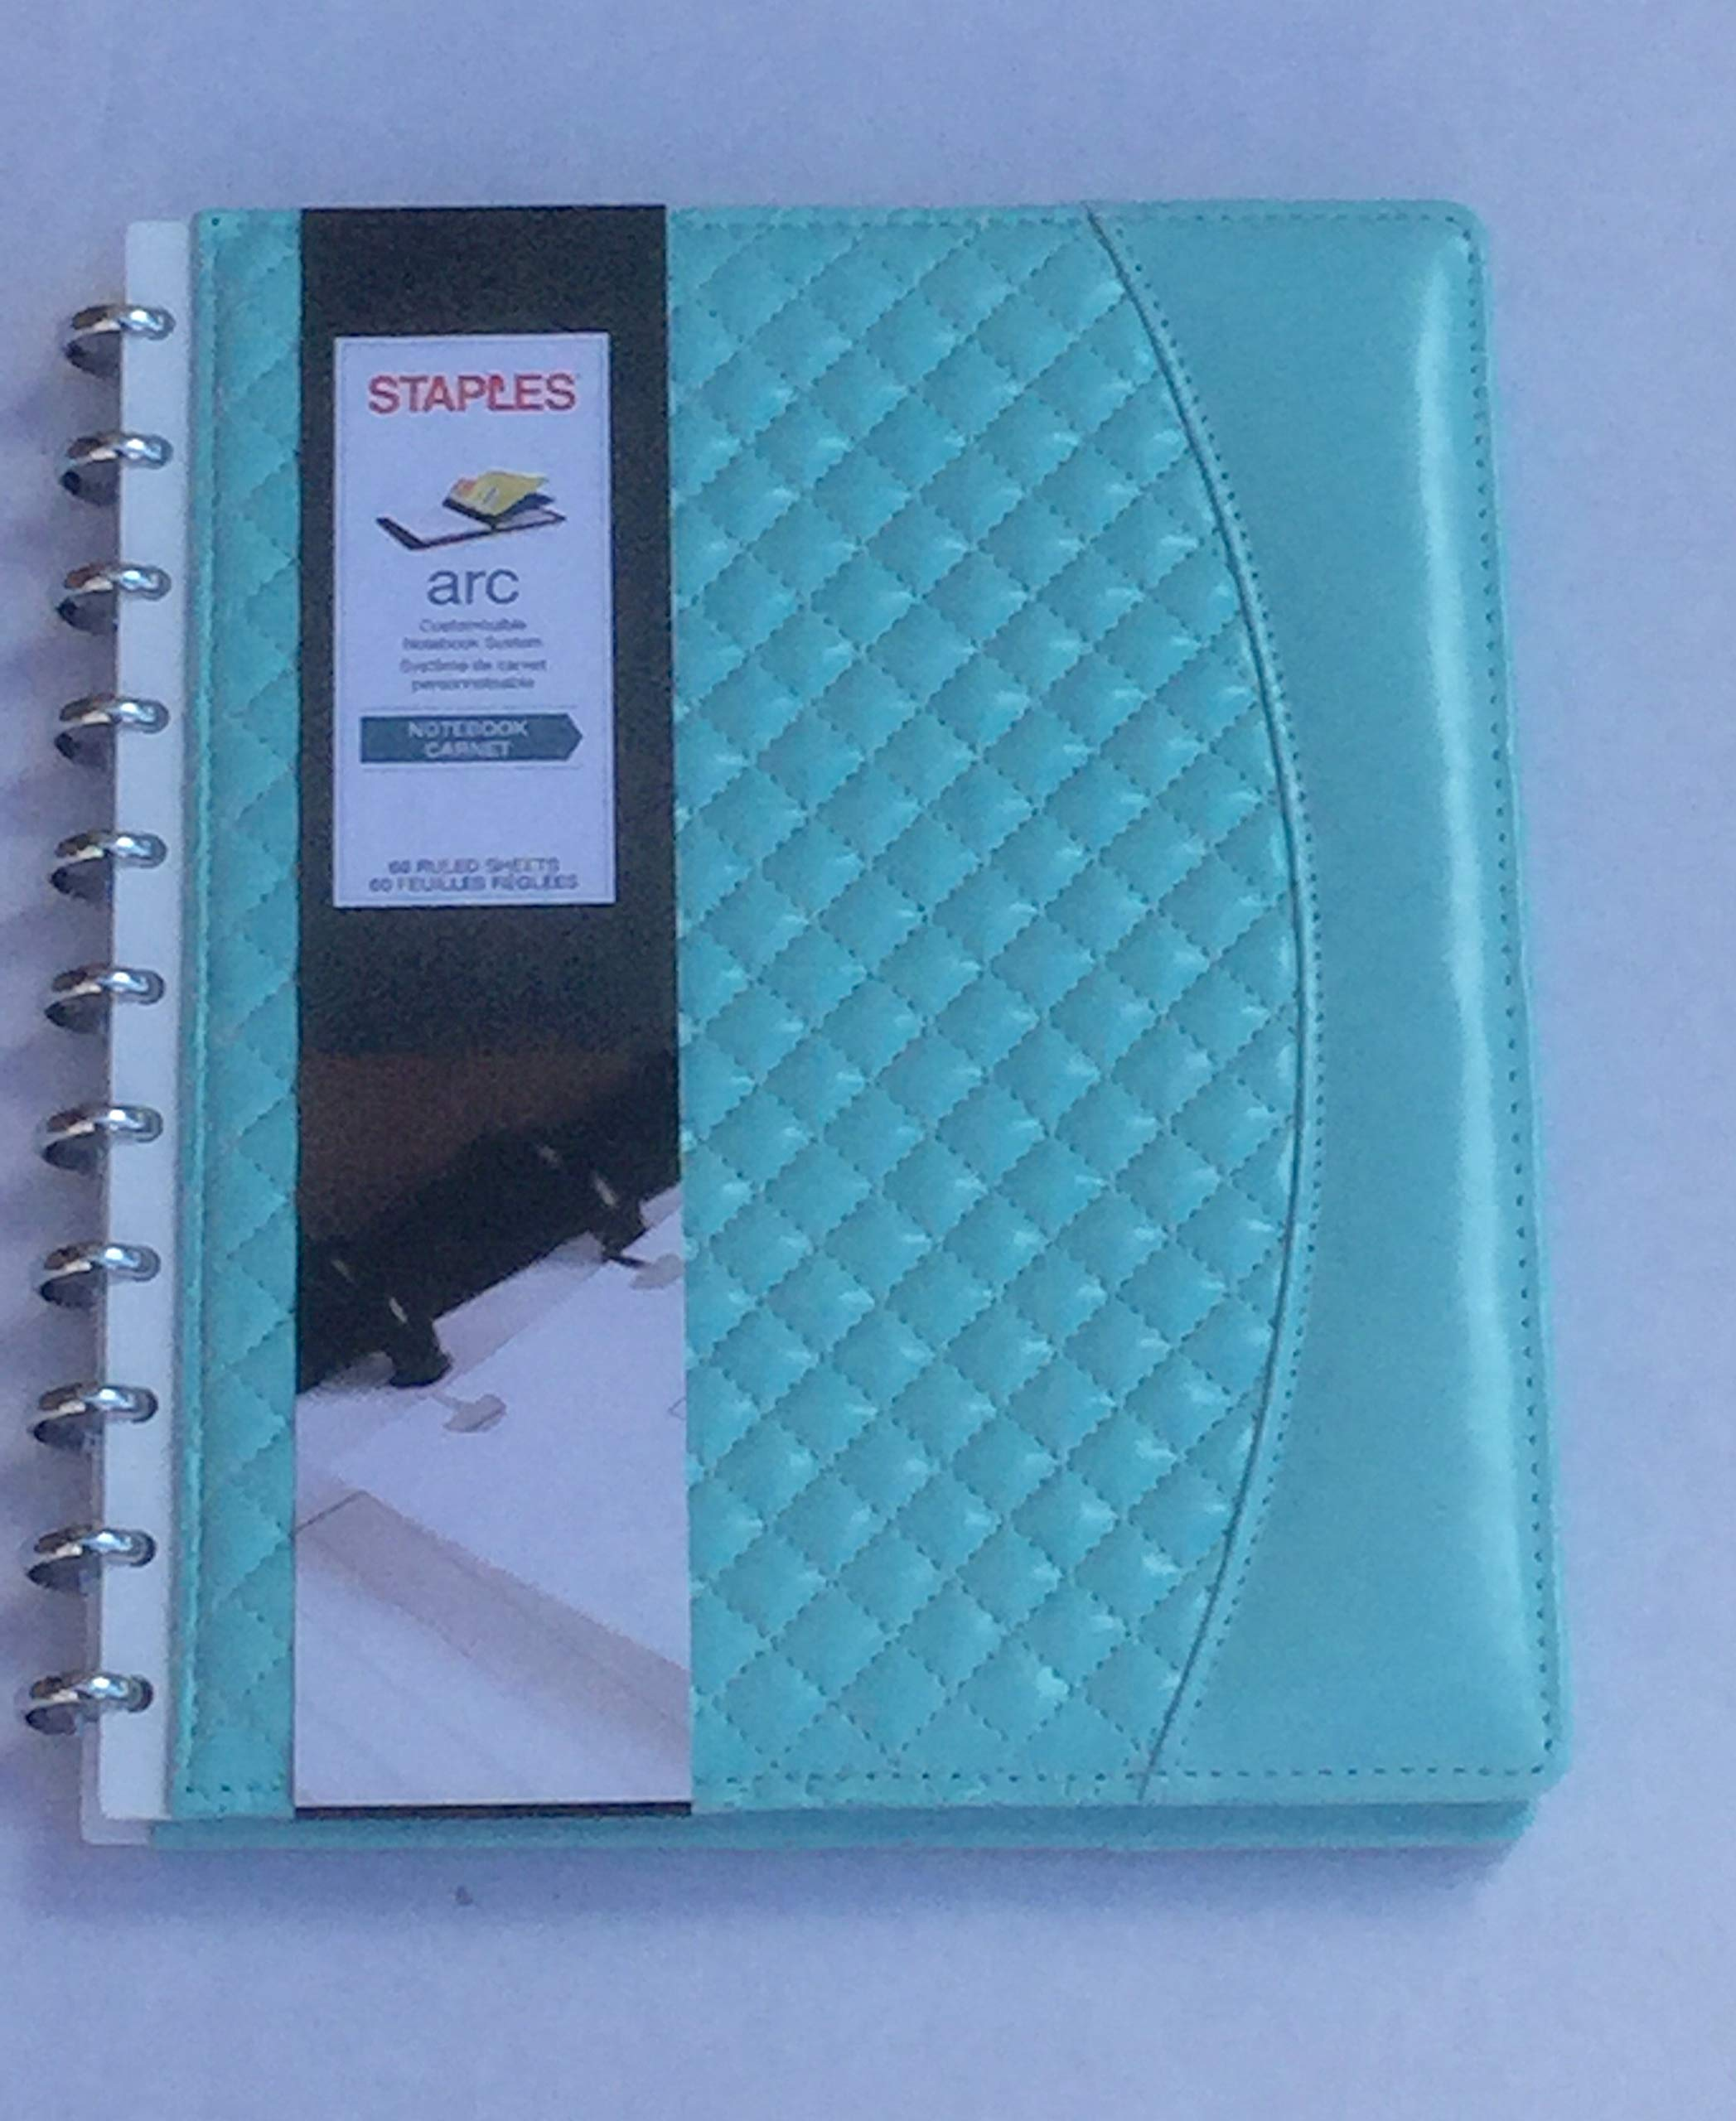 Arc Customizable Notebook System Quilted Leather 8.5 x 5.5 inch Aqua Marine